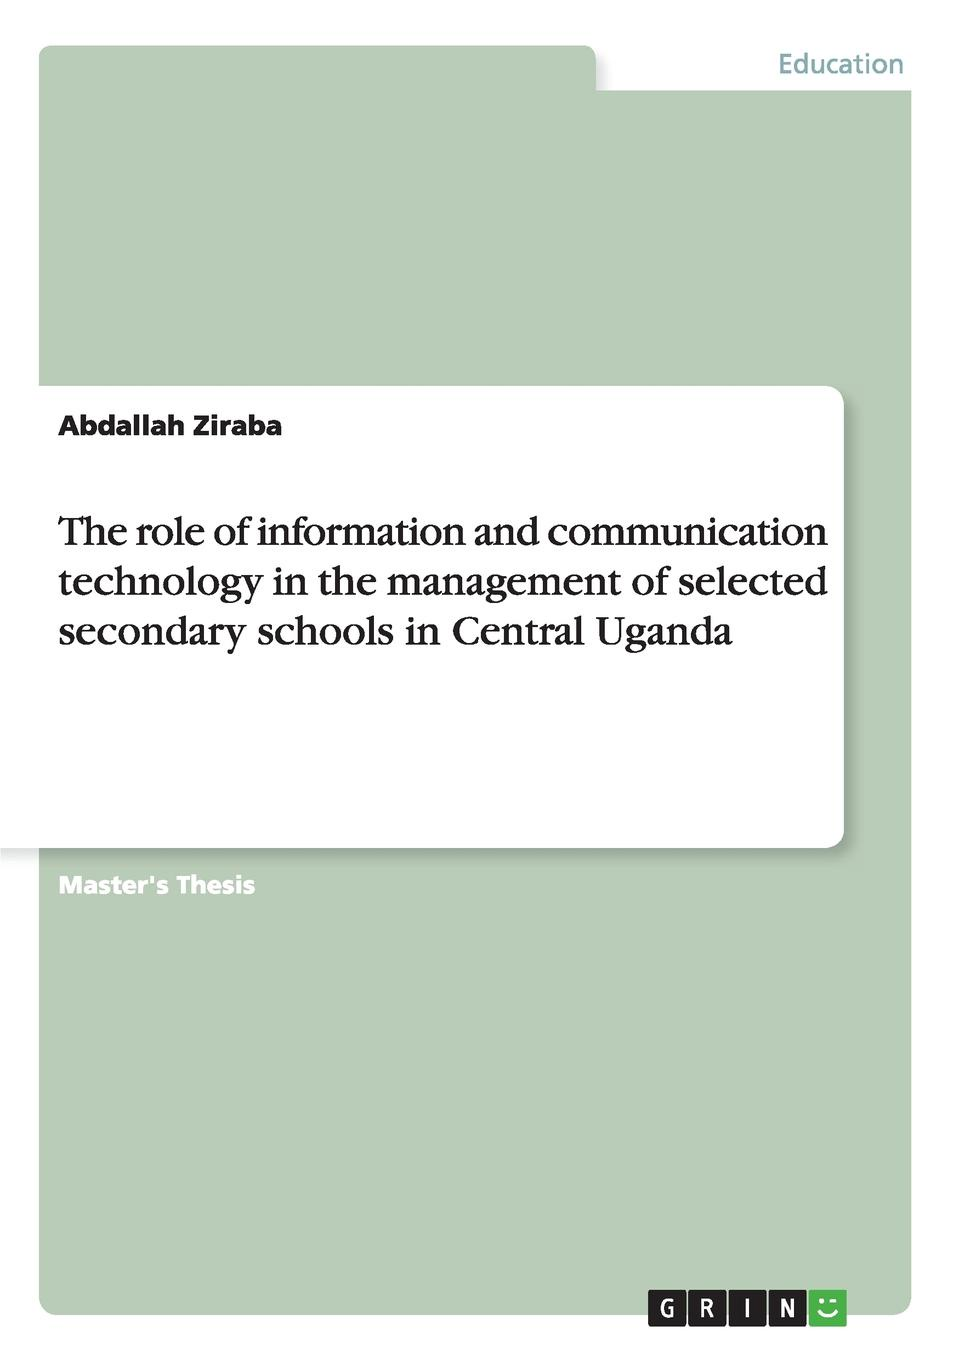 Abdallah Ziraba The role of information and communication technology in the management of selected secondary schools in Central Uganda